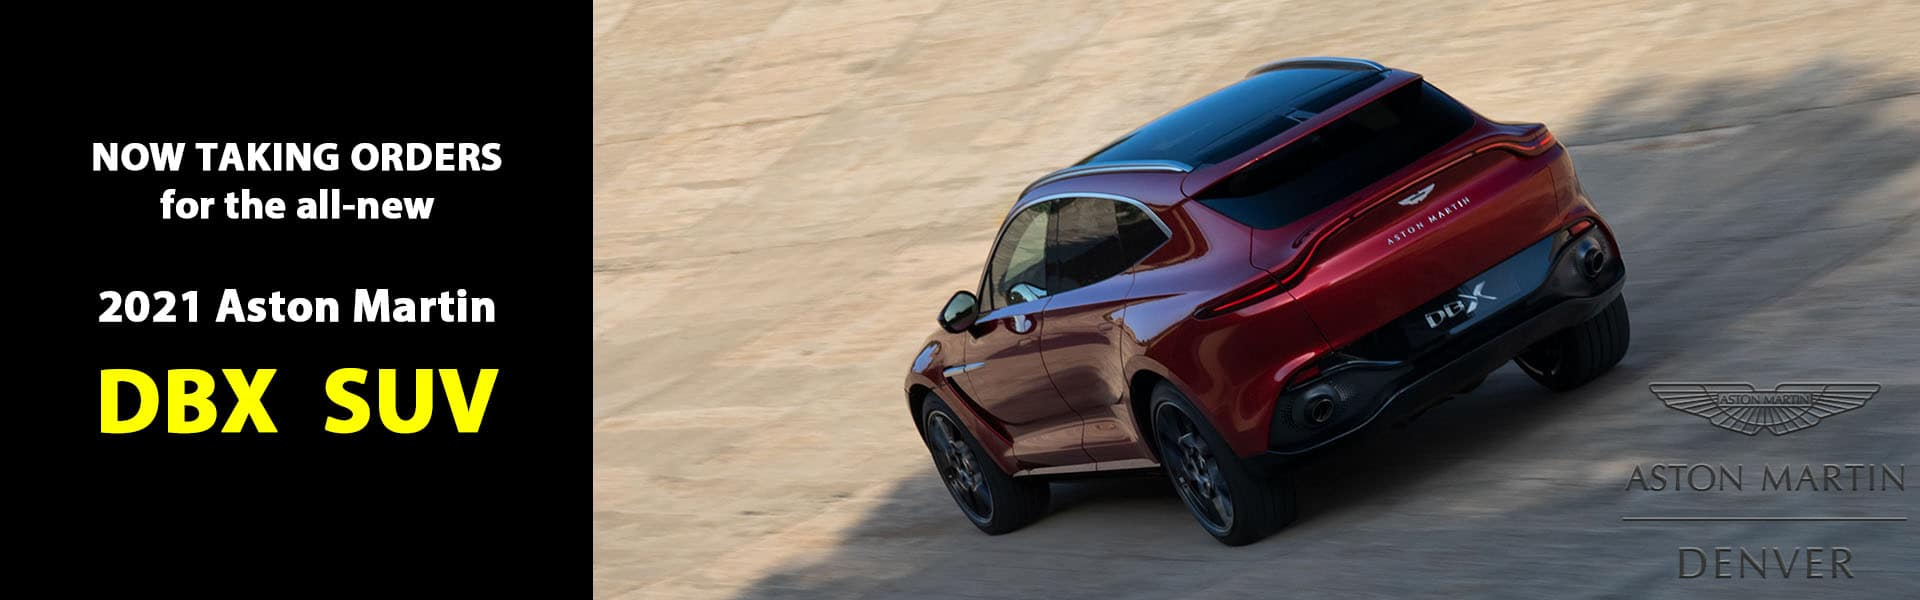 Now Taking Orders for the 2021 Aston Martin DBX SUV